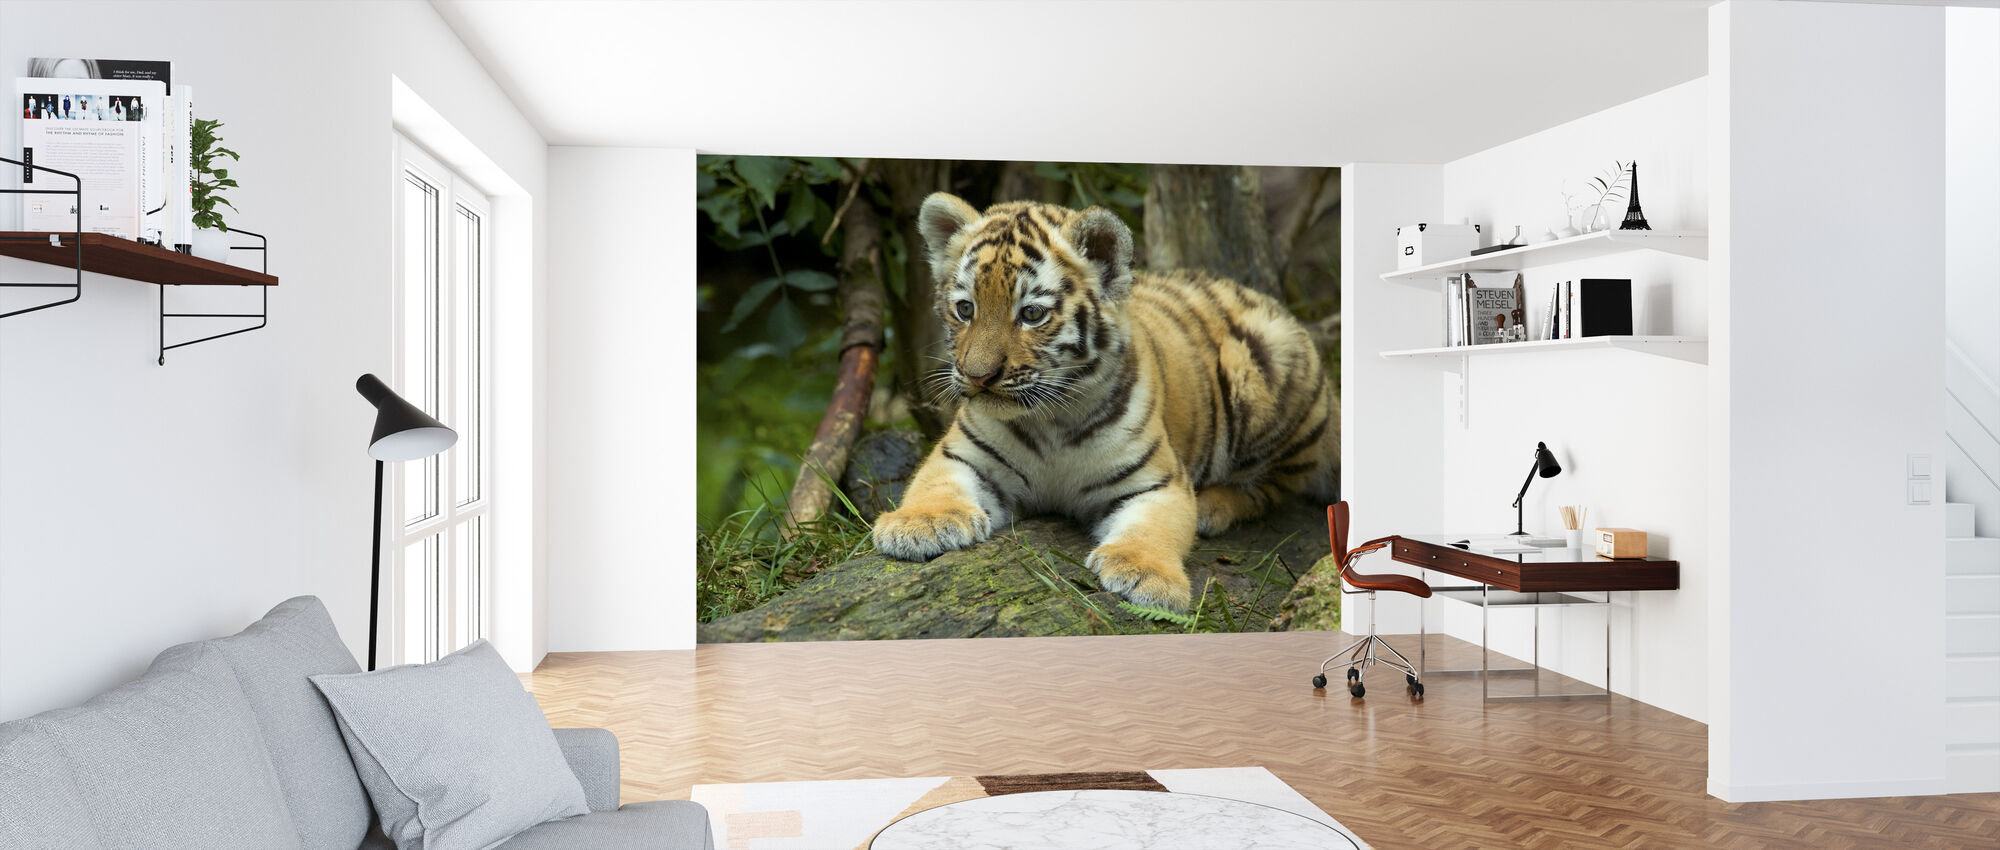 Young Cub - Wallpaper - Office